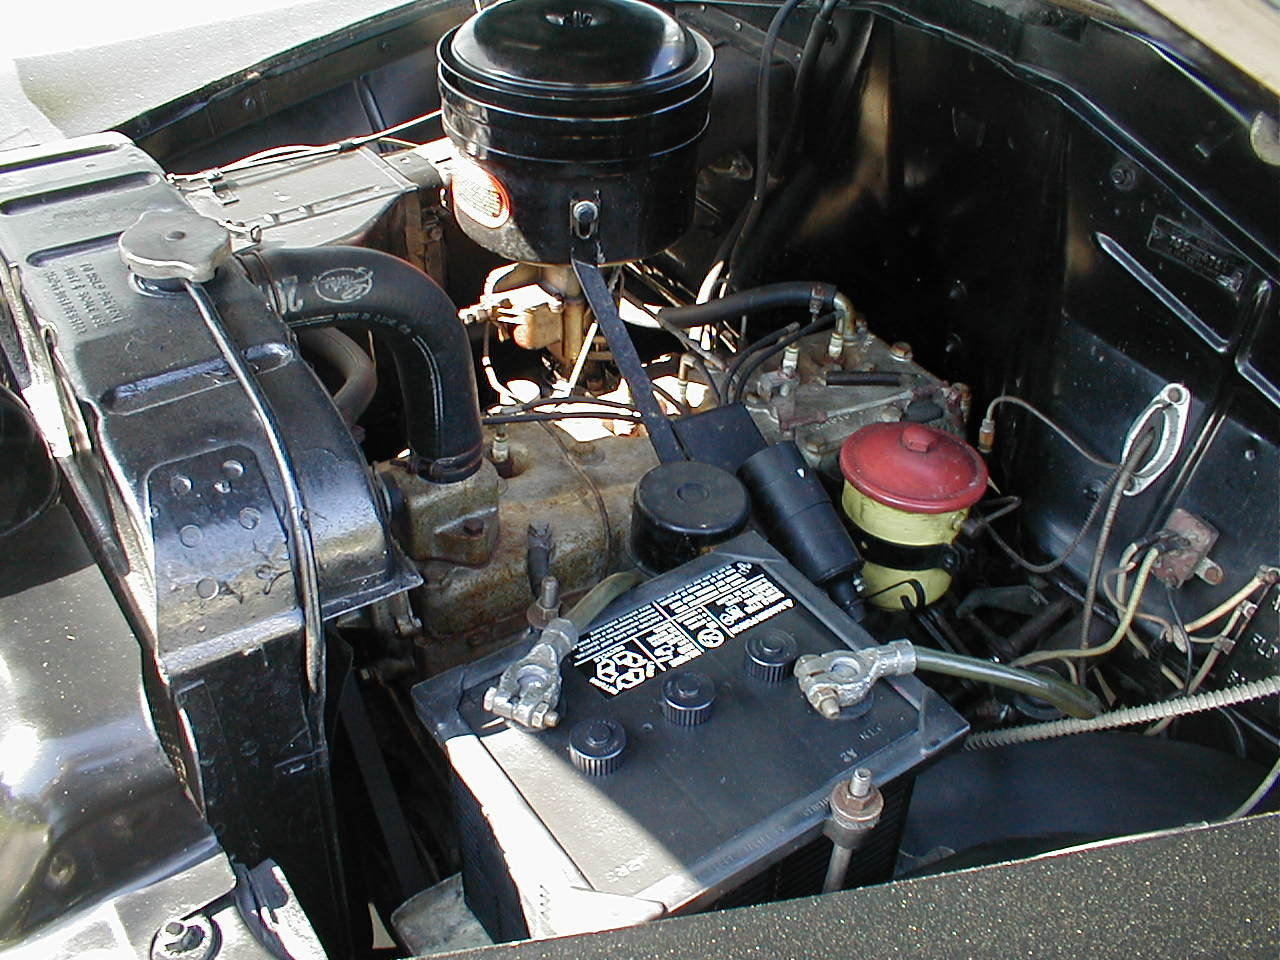 1949 49 Plymouth Engine Compartment Very Clean